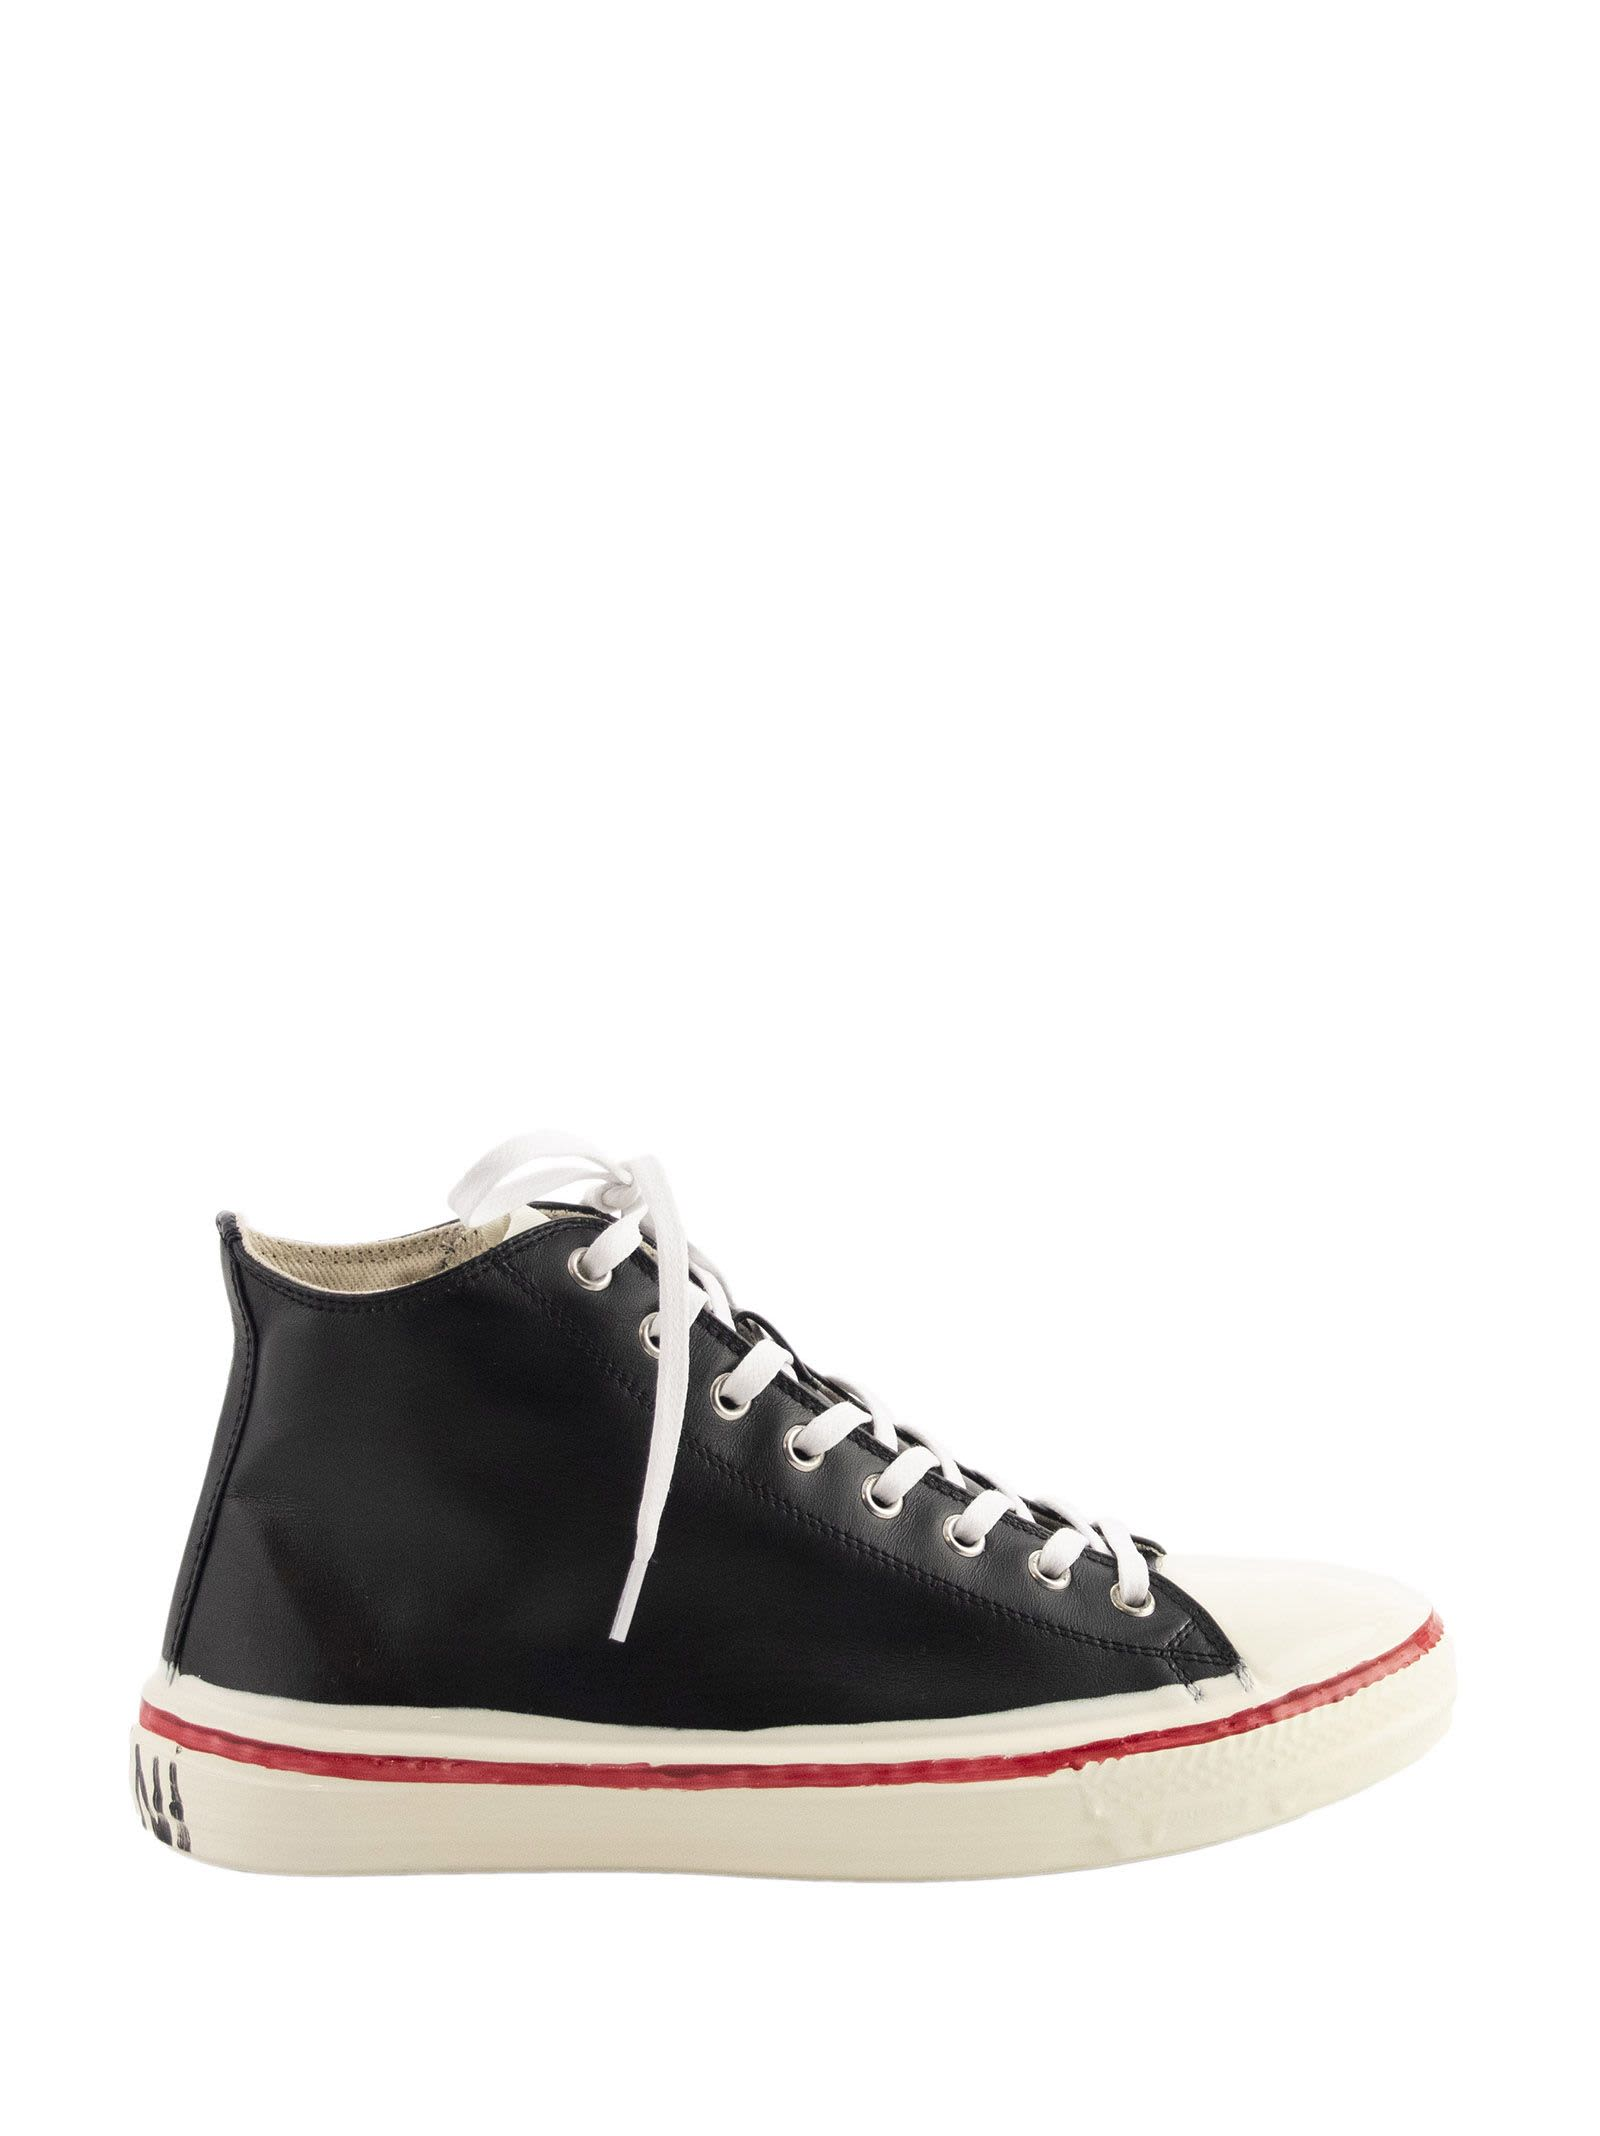 Marni Marni Graffiti Black High-top Sneaker In Leather With Partial Rubber Coating